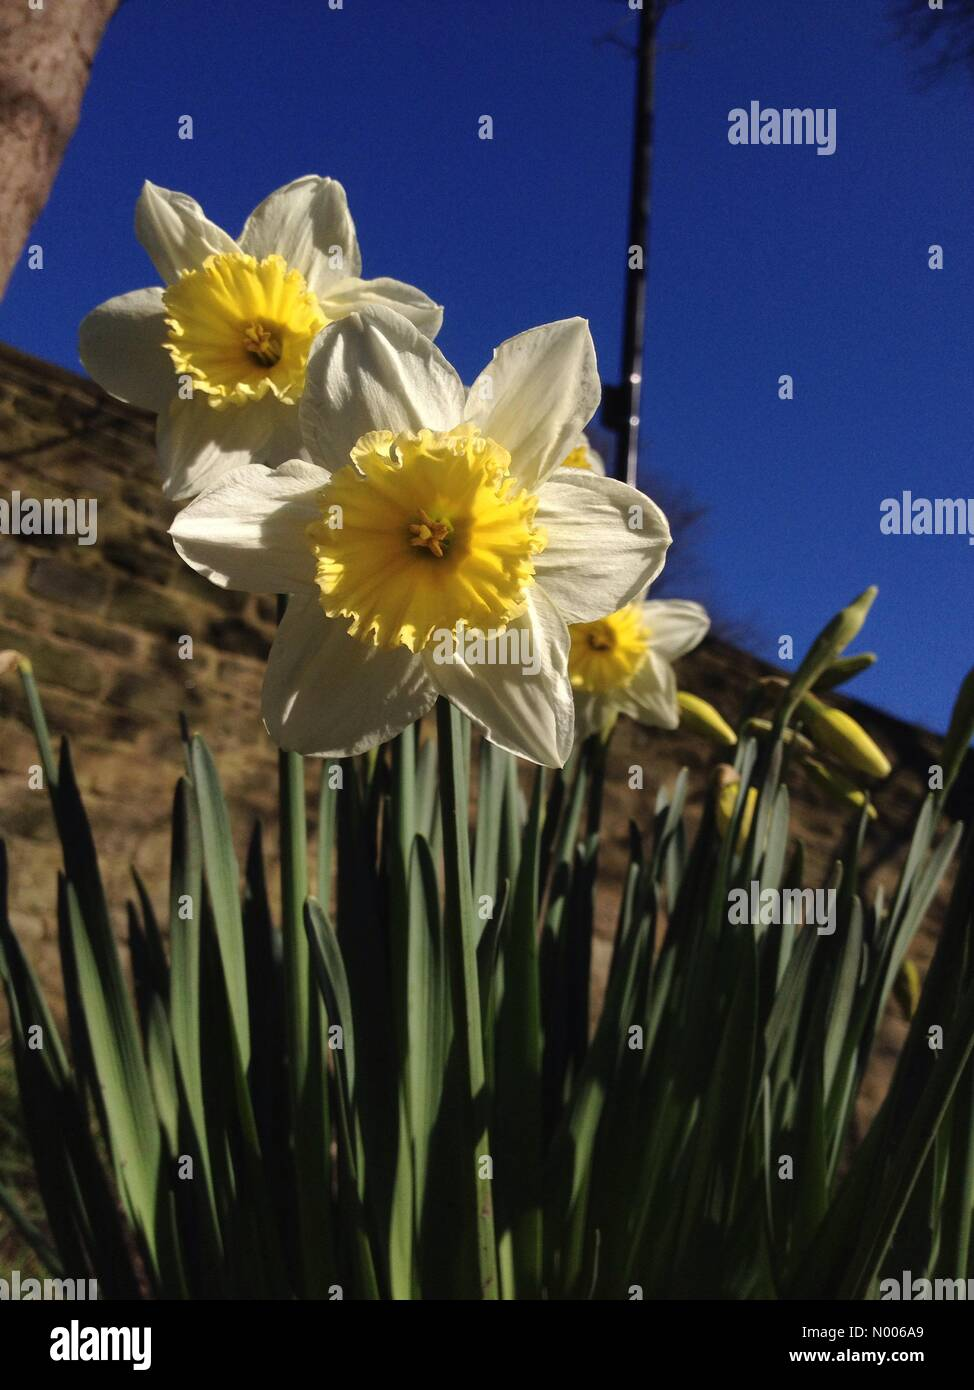 UK weather -Sunny weather added to the beauty of the spring daffodils at Kirkstall Abbey, near Leeds, West Yorkshire. - Stock Image